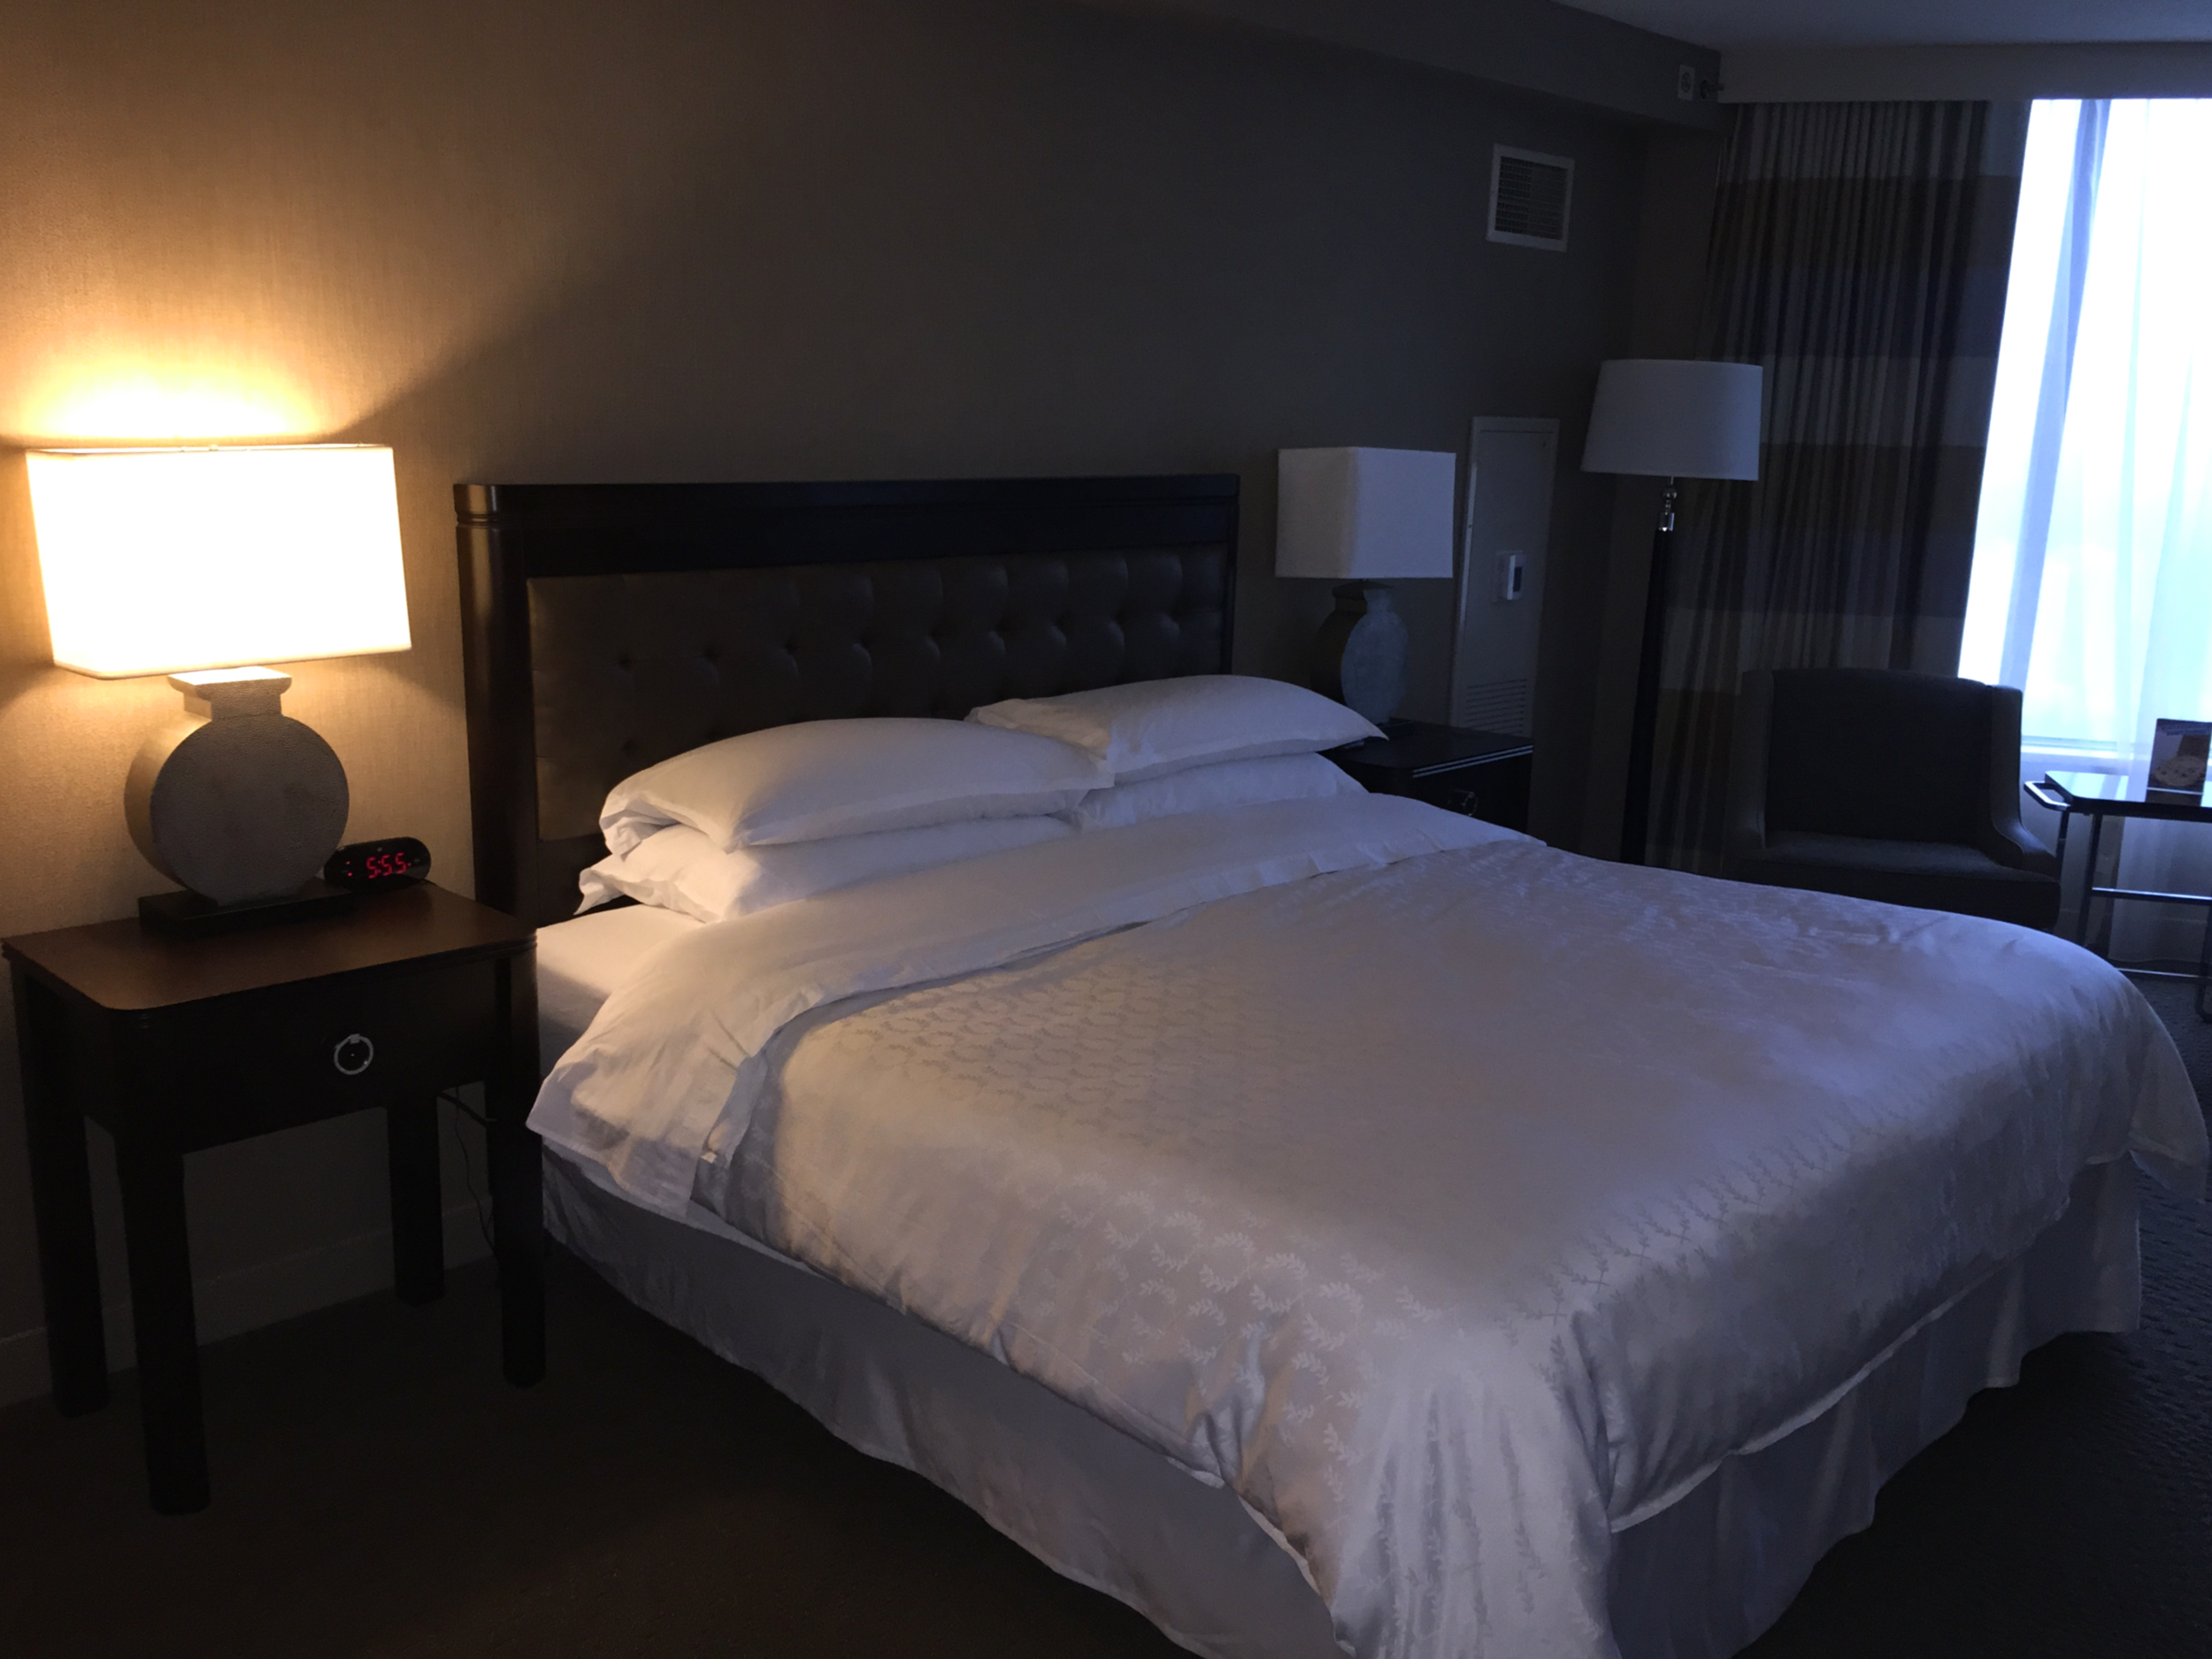 The king size bed was comfortable and almost seemed small in the large room  (click to enlarge)